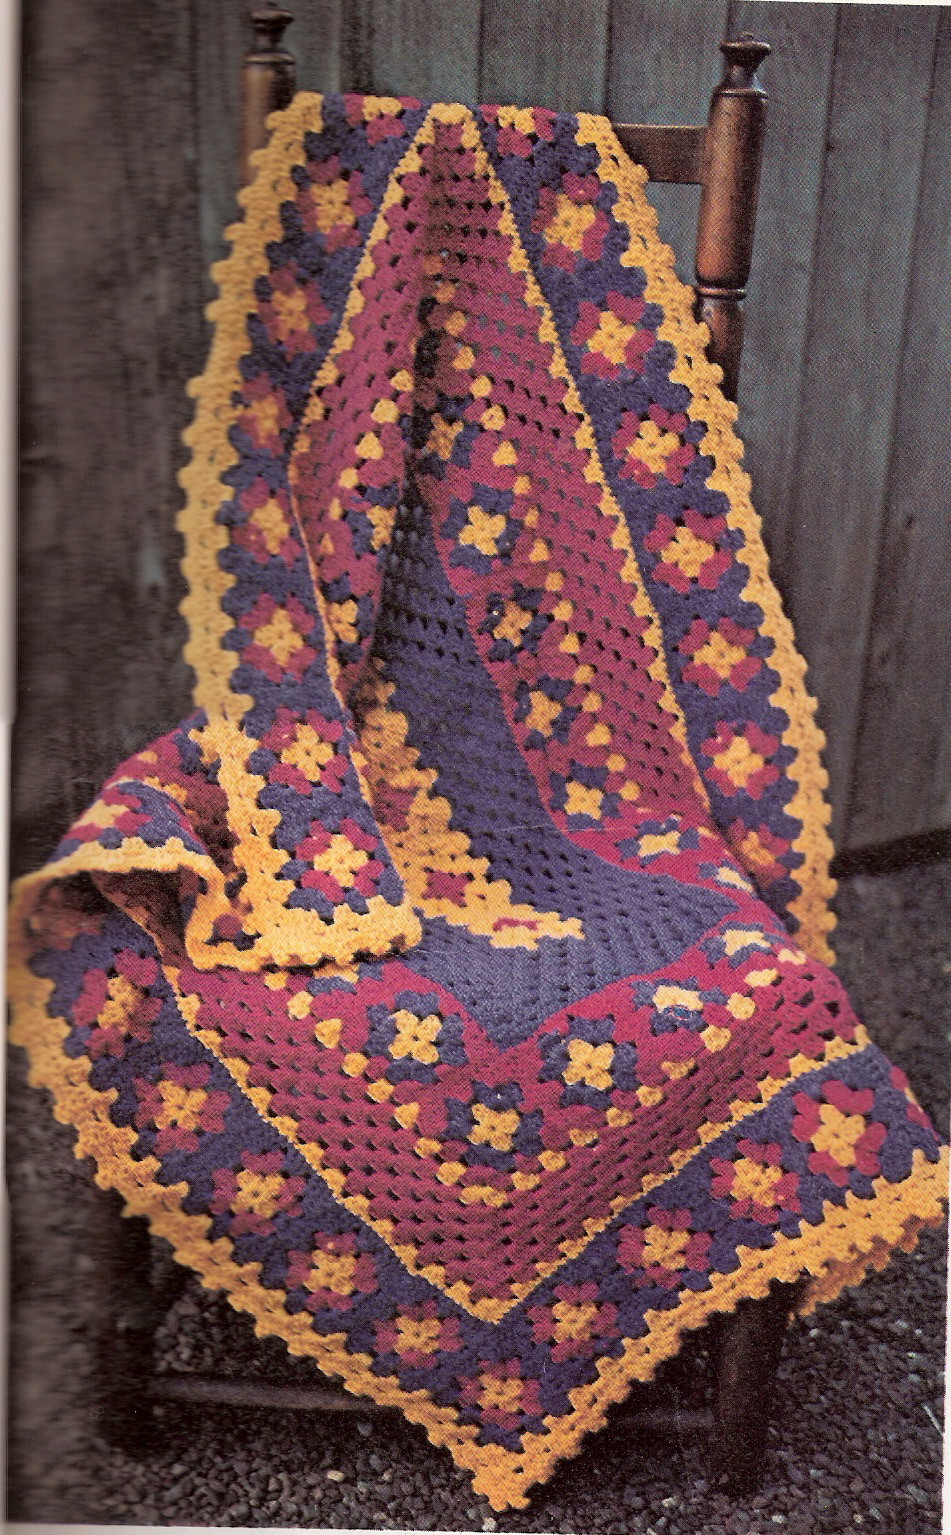 Free Crochet Baby Afghan Patterns Fresh Crochet Diamond Square Afghan Pattern – Crochet Patterns Of Superb 46 Photos Free Crochet Baby Afghan Patterns